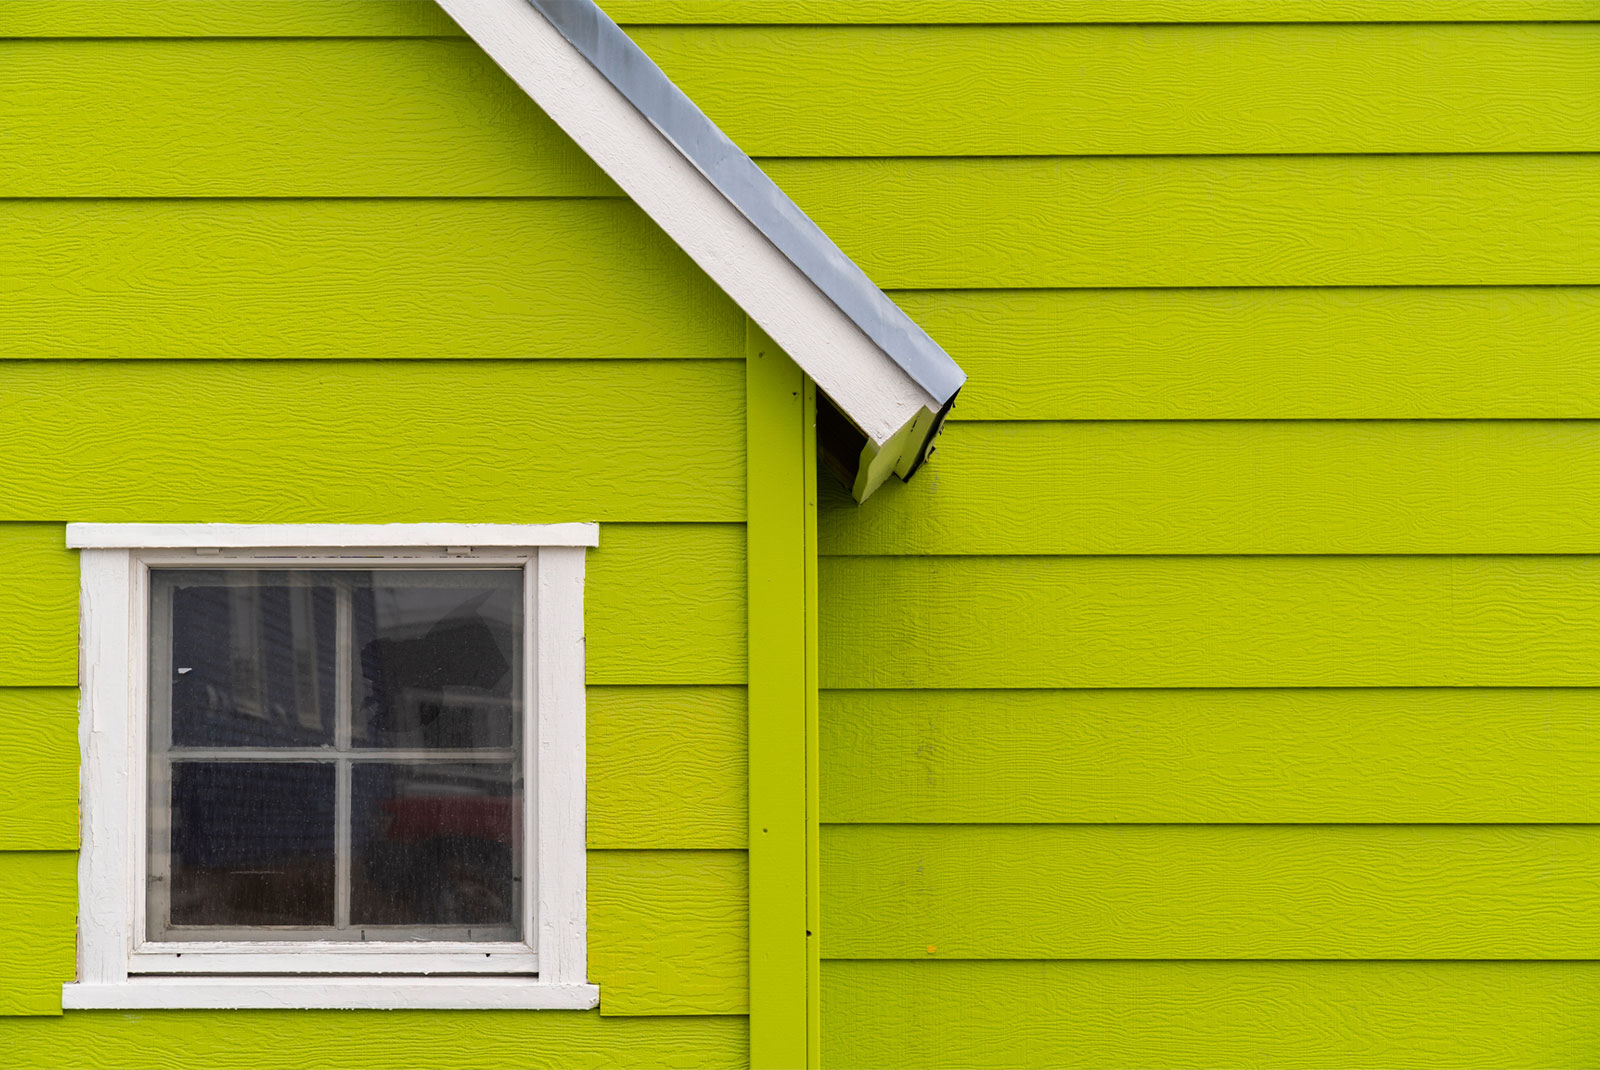 Bright green house with square window reflecting fixer upper topic